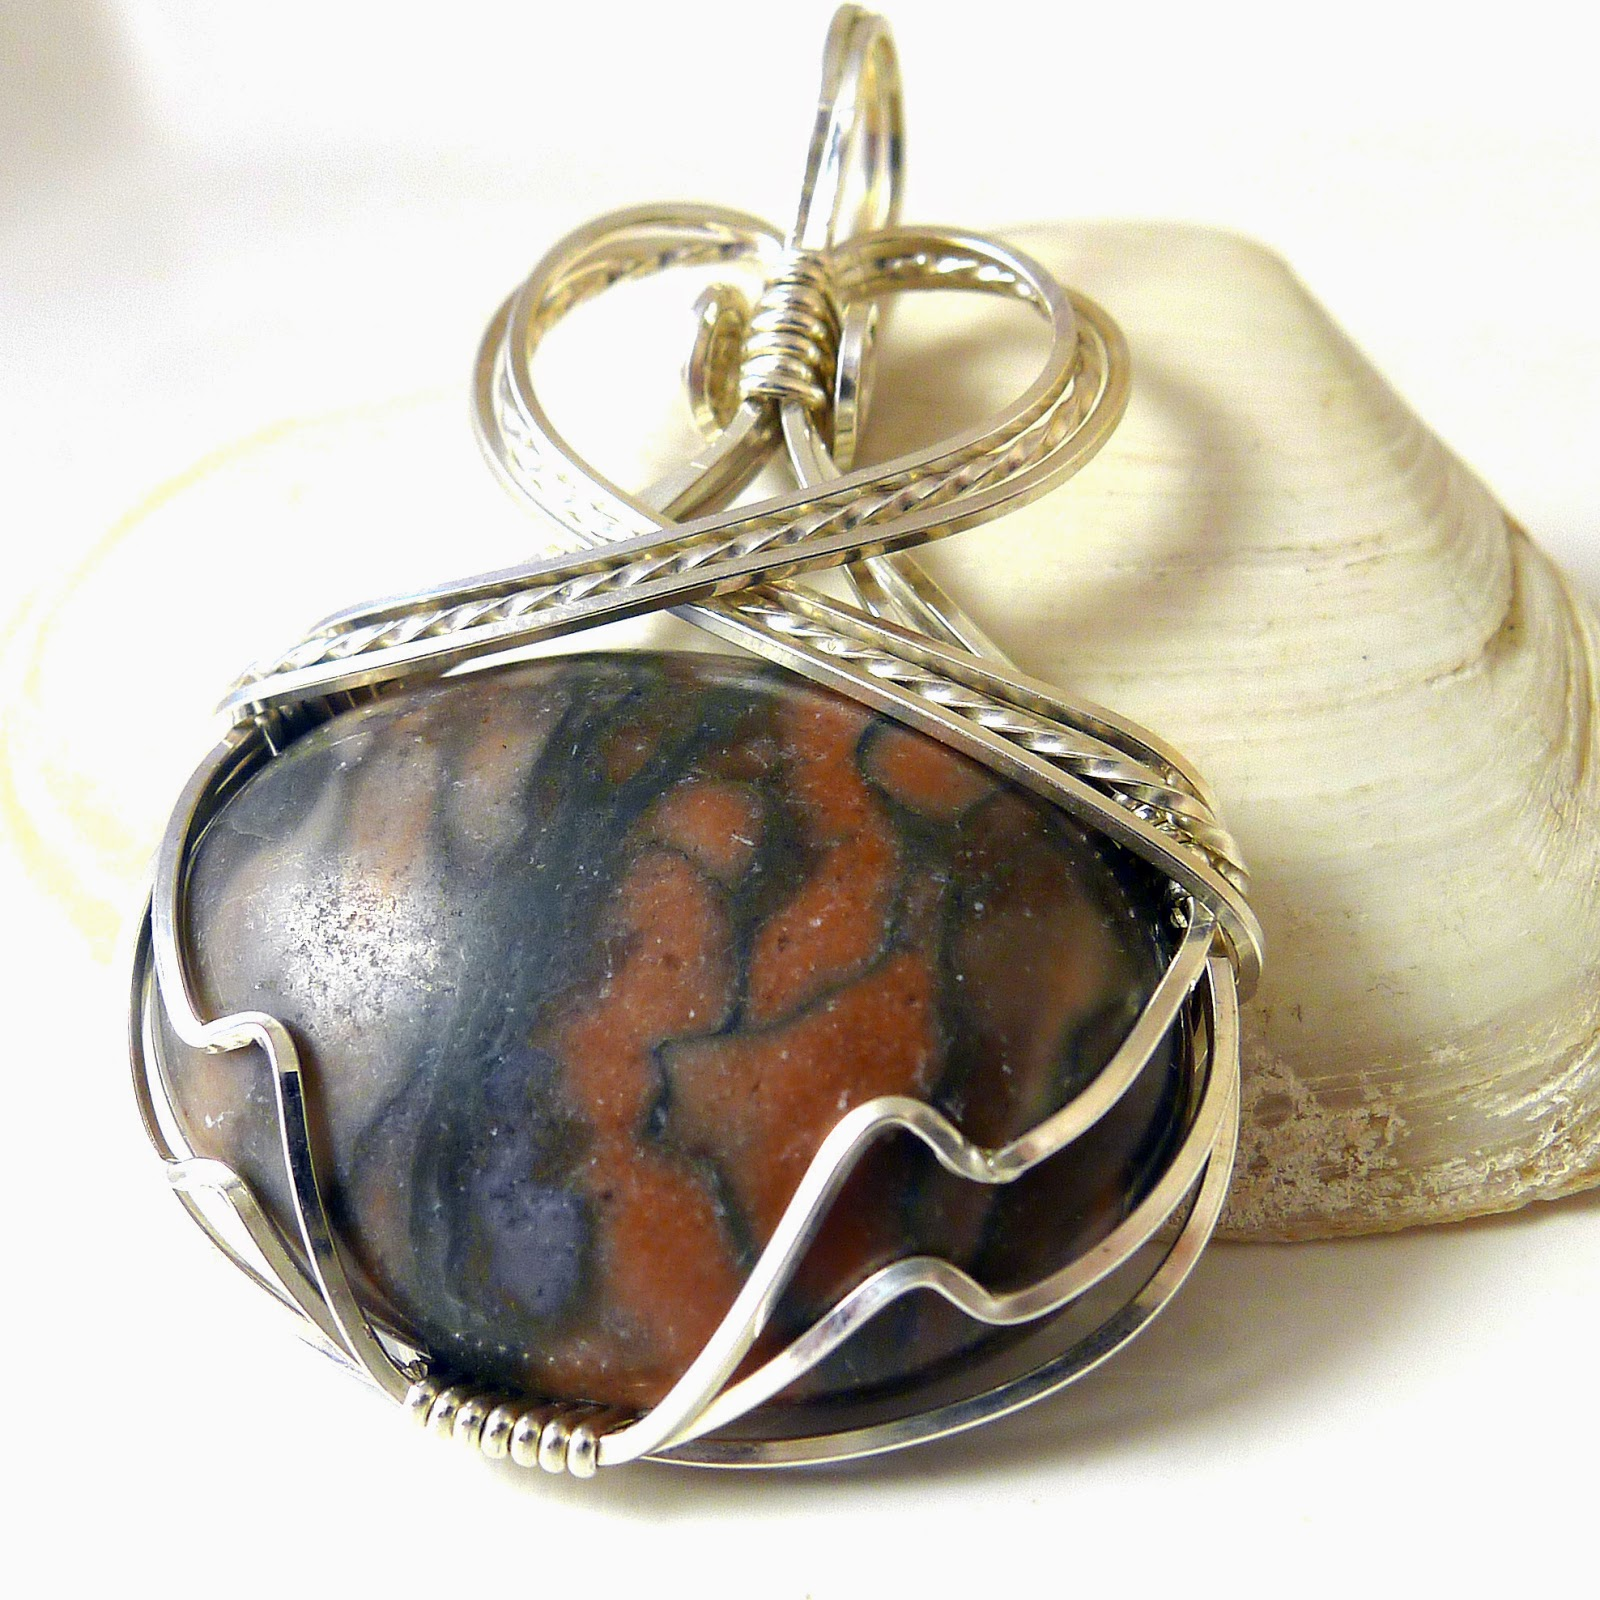 http://www.shazzabethcreations.co.nz/#!product/prd1/2508992271/jasper-and-sterling-silver-pendant